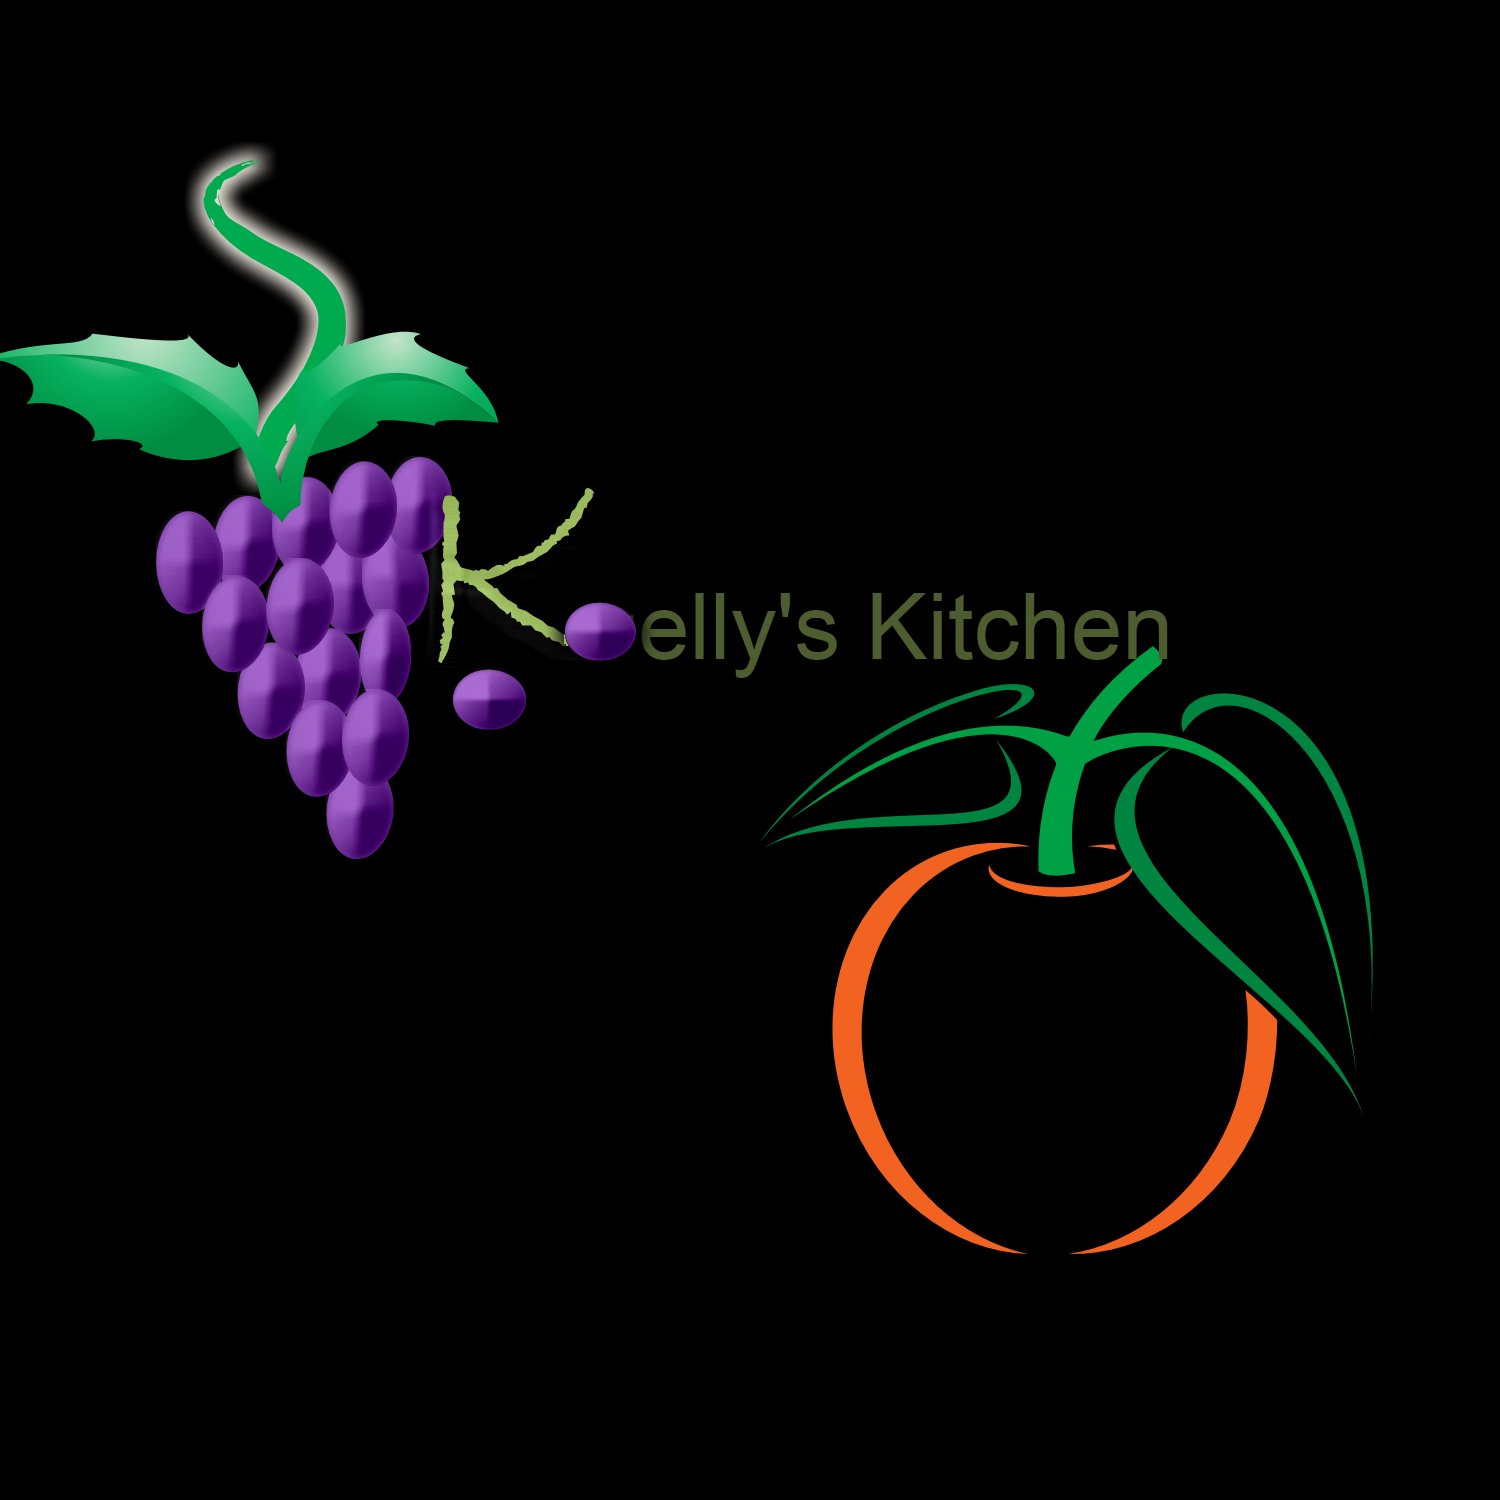 Logo Design by Melanie Fitzpatrick - Entry No. 35 in the Logo Design Contest Unique Logo Design Wanted for Kelly's Kitsch'n.